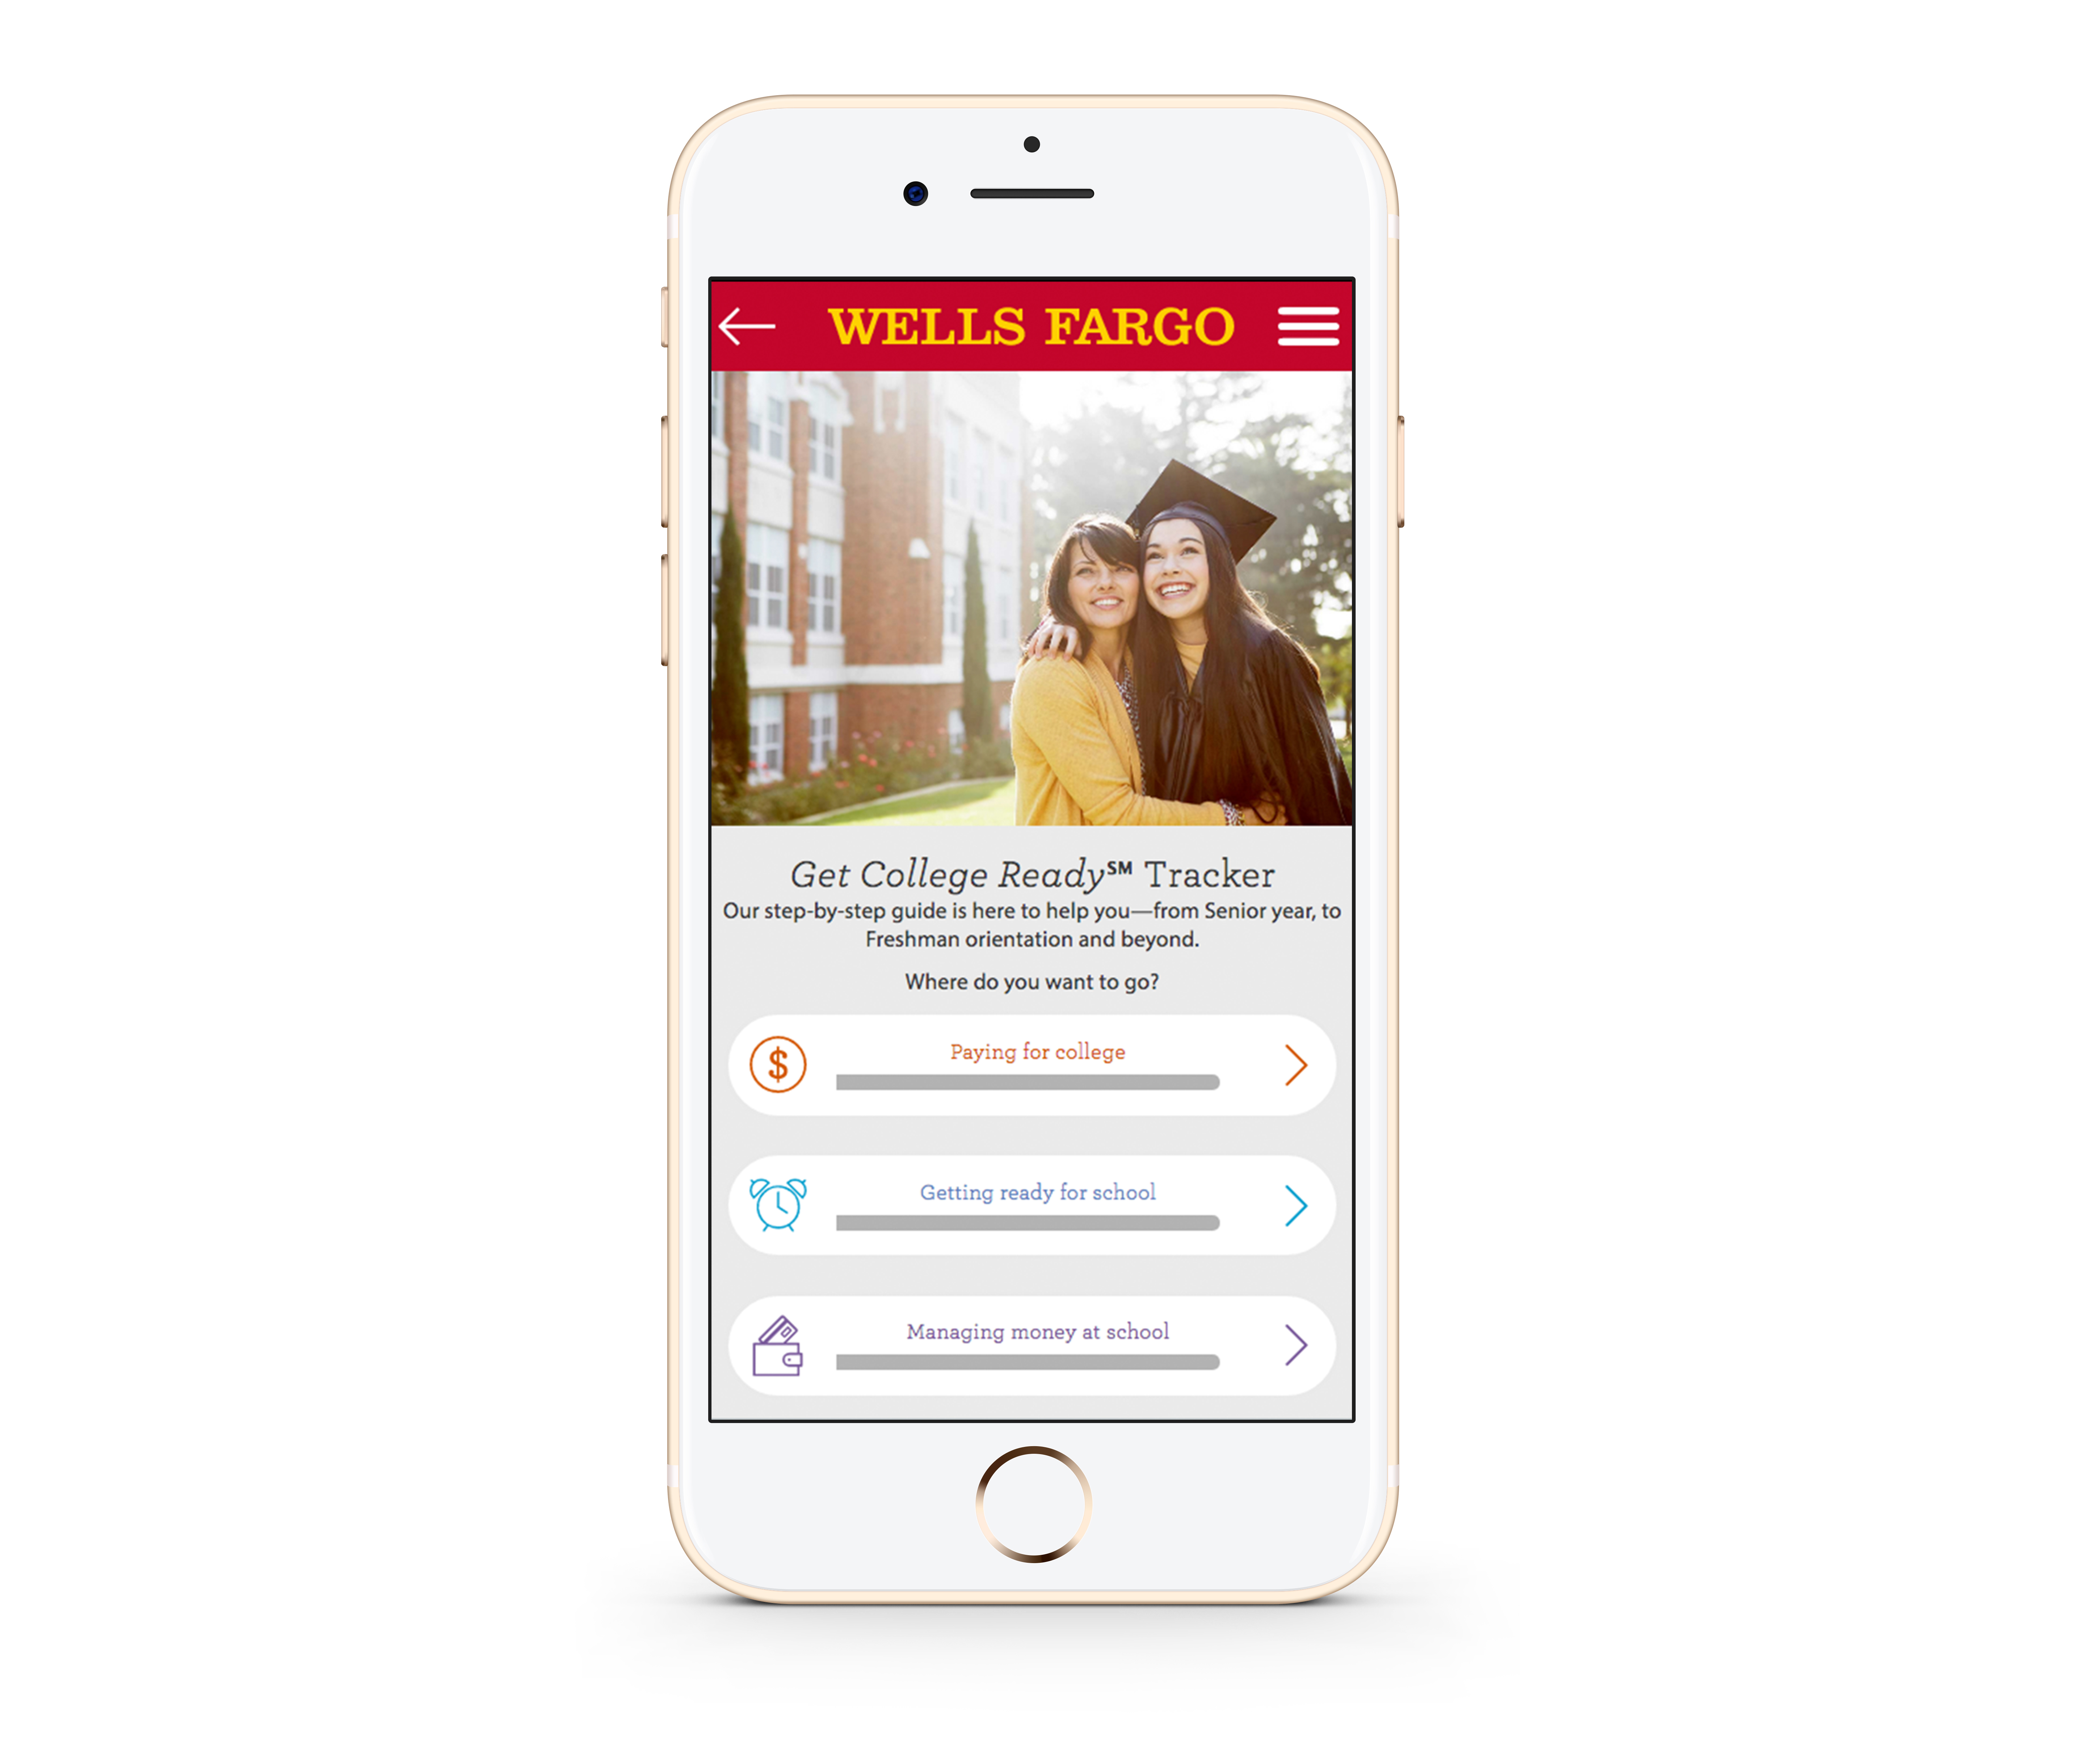 Wells Fargo Get College Ready℠ Tracker tool as seen from a mobile device